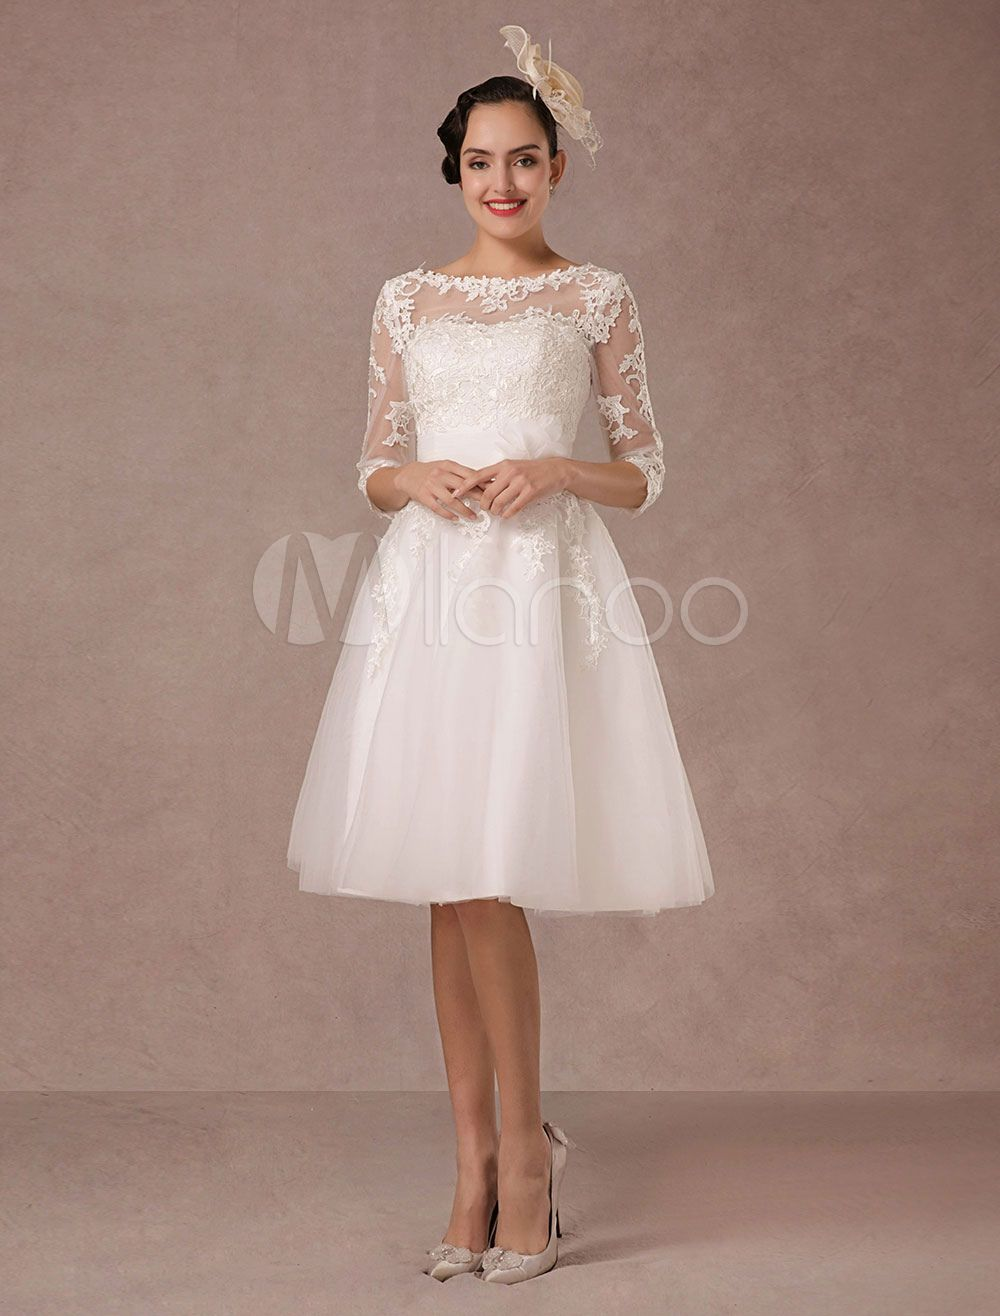 16277e54438d Short Wedding Dress Vintage Lace Applique Long Sleeves Tea length A line  Tulle Bridal Gown With Flower Sash - Milanoo.com